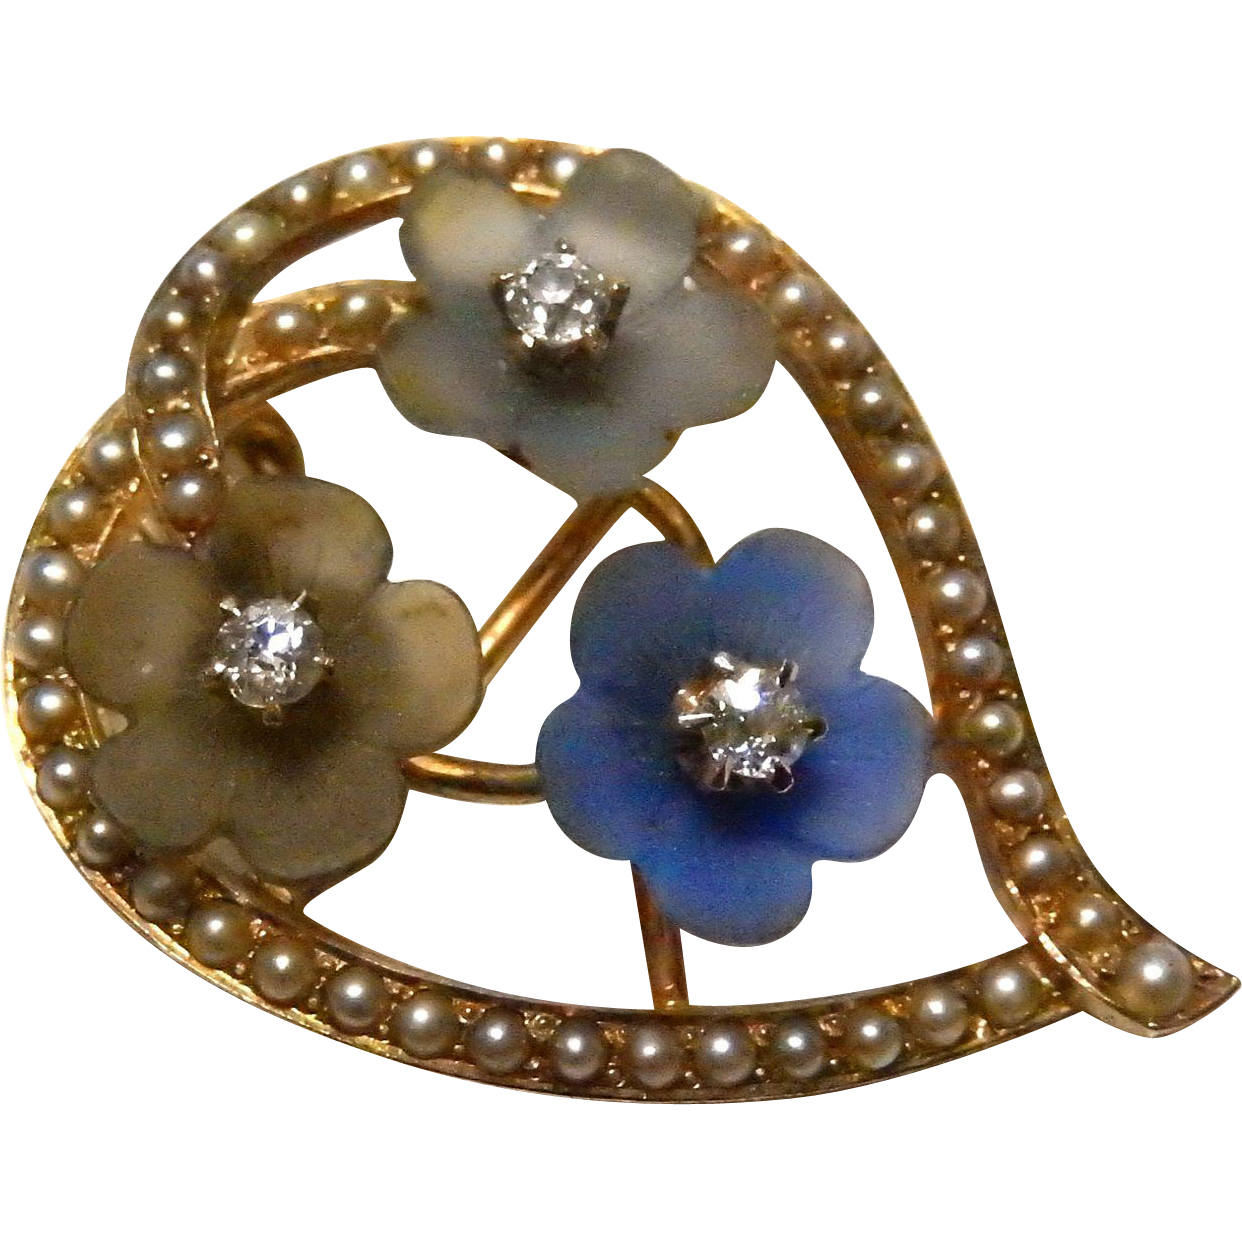 14k gold and diamond art nouveau brooch pendant flowers for Best place to sell gold jewelry in chicago